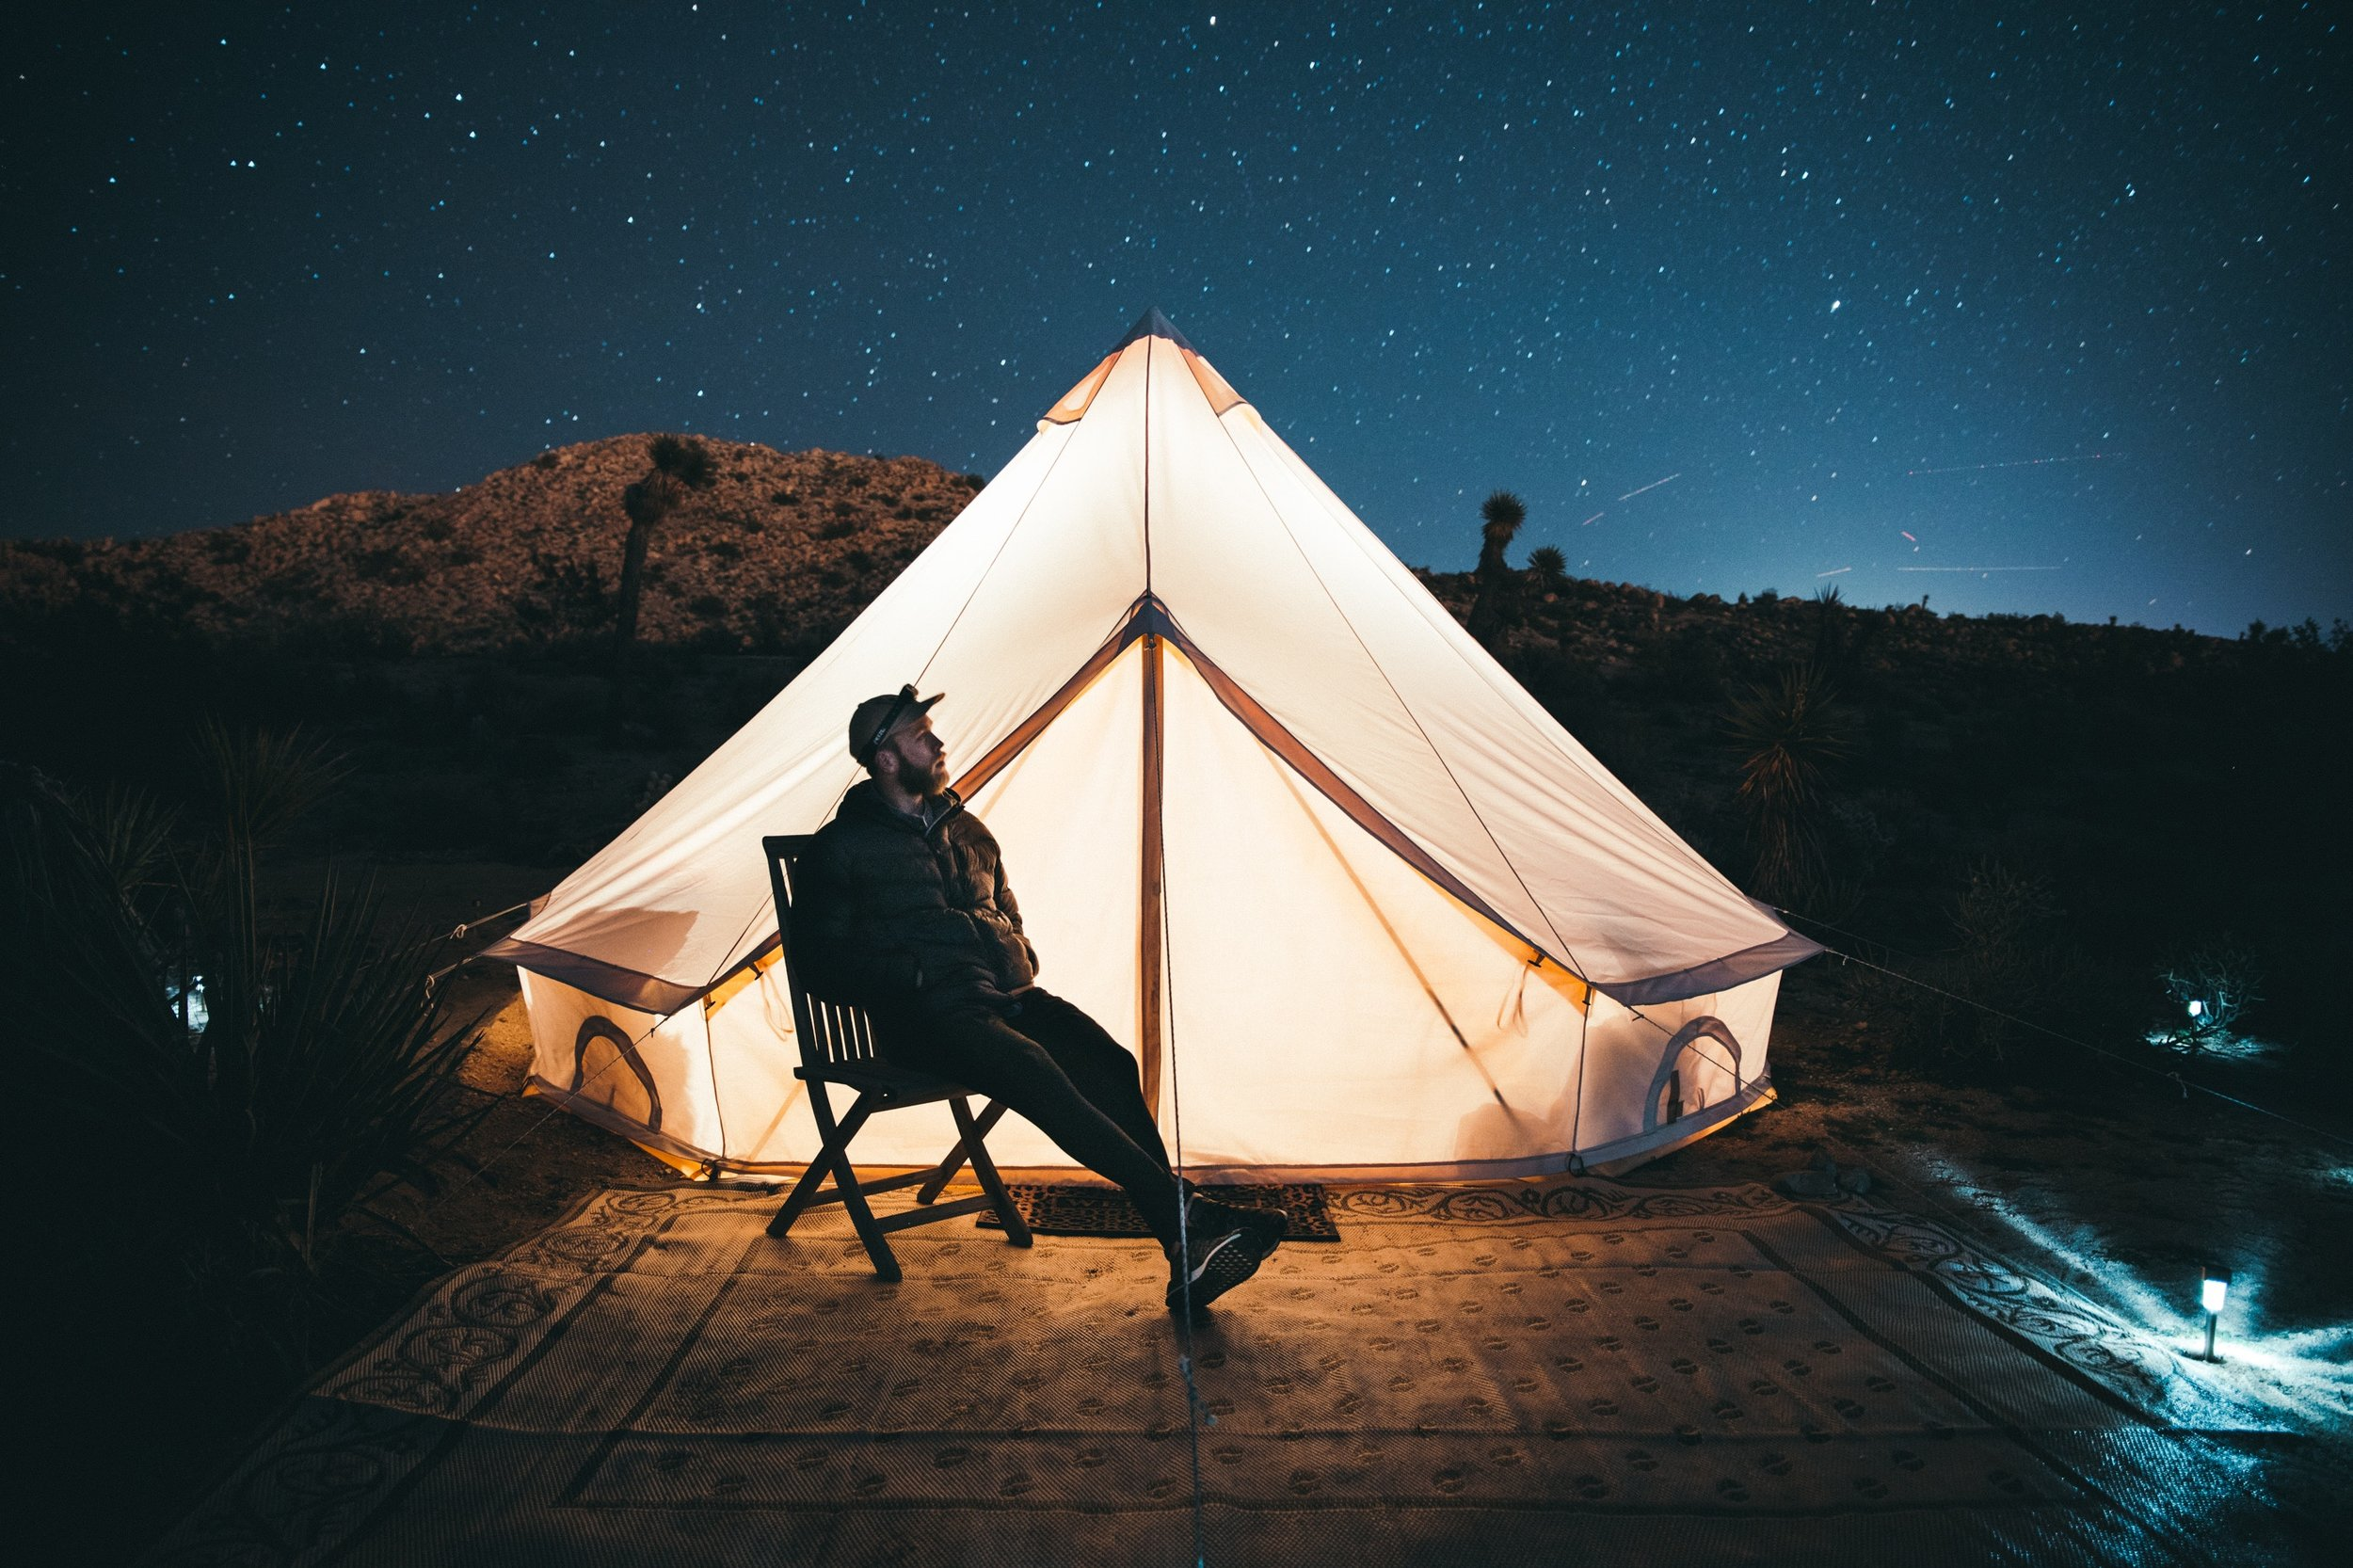 Star Gazing Yurt Tent - Enjoying watching the stars from the comfort of your own tent in the desert.